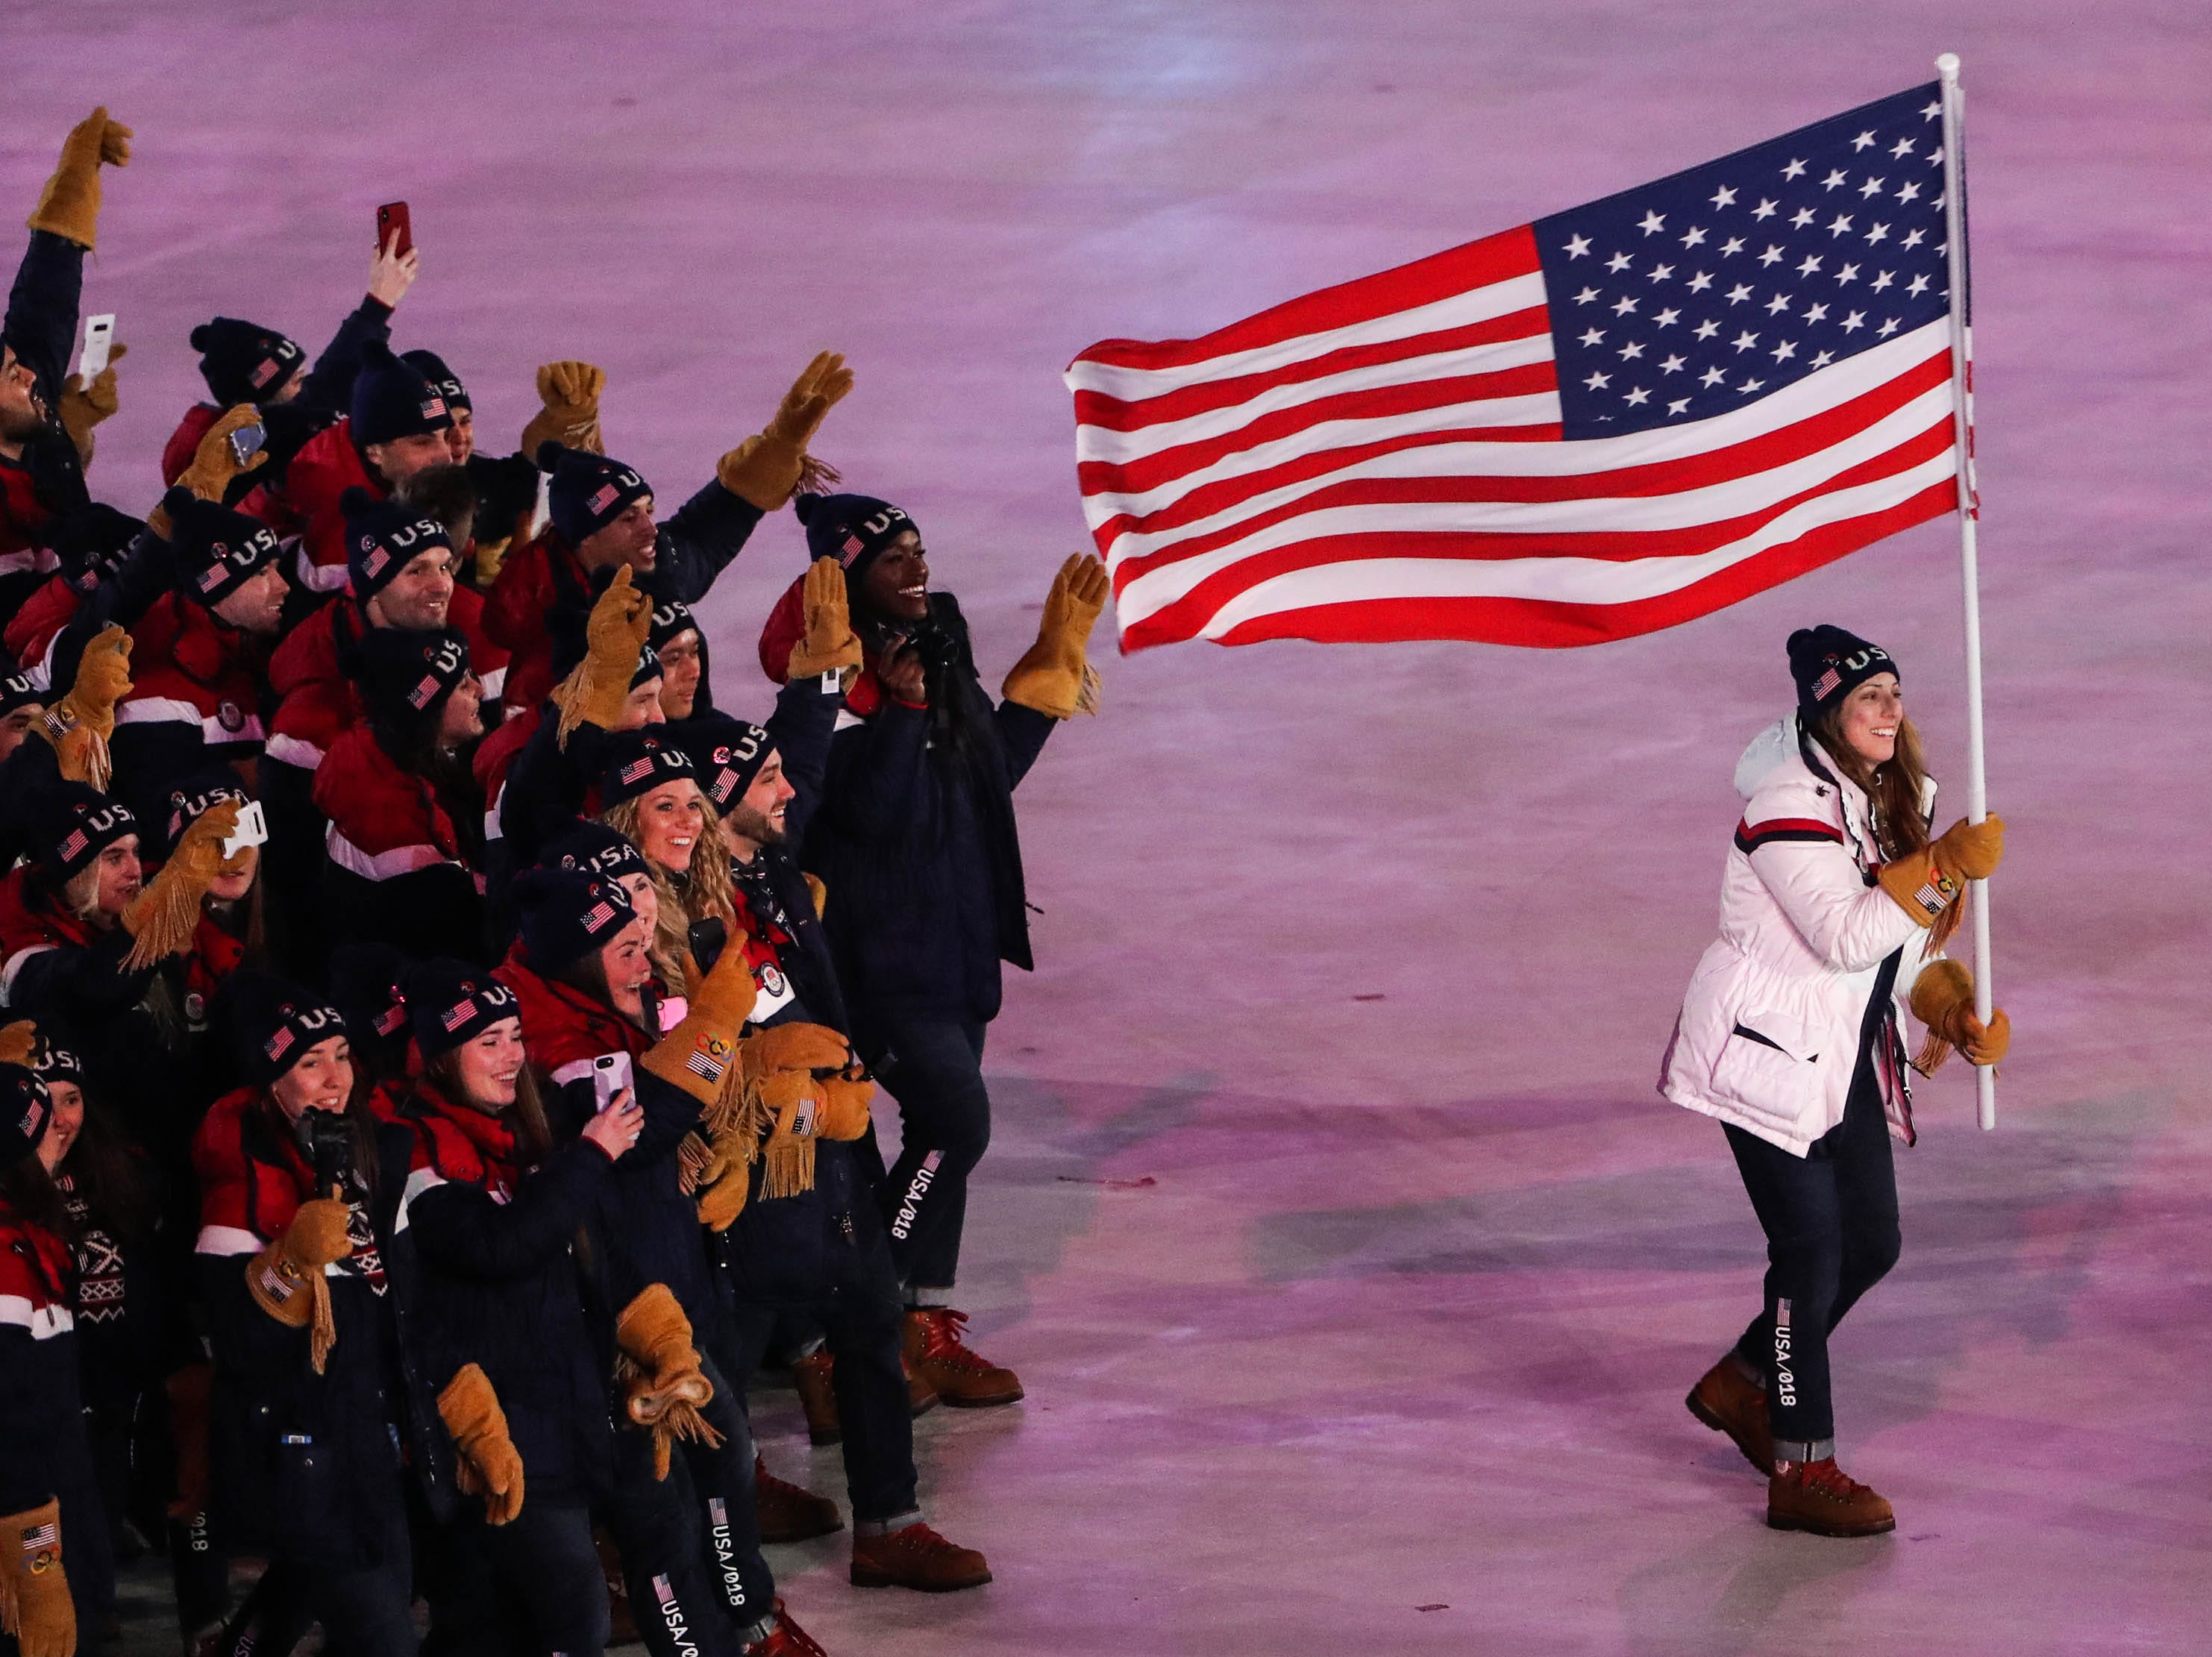 Feb. 9: Erin Hamlin leads Team USA in the parade of athletes in the opening ceremony during the Pyeongchang Winter Games.